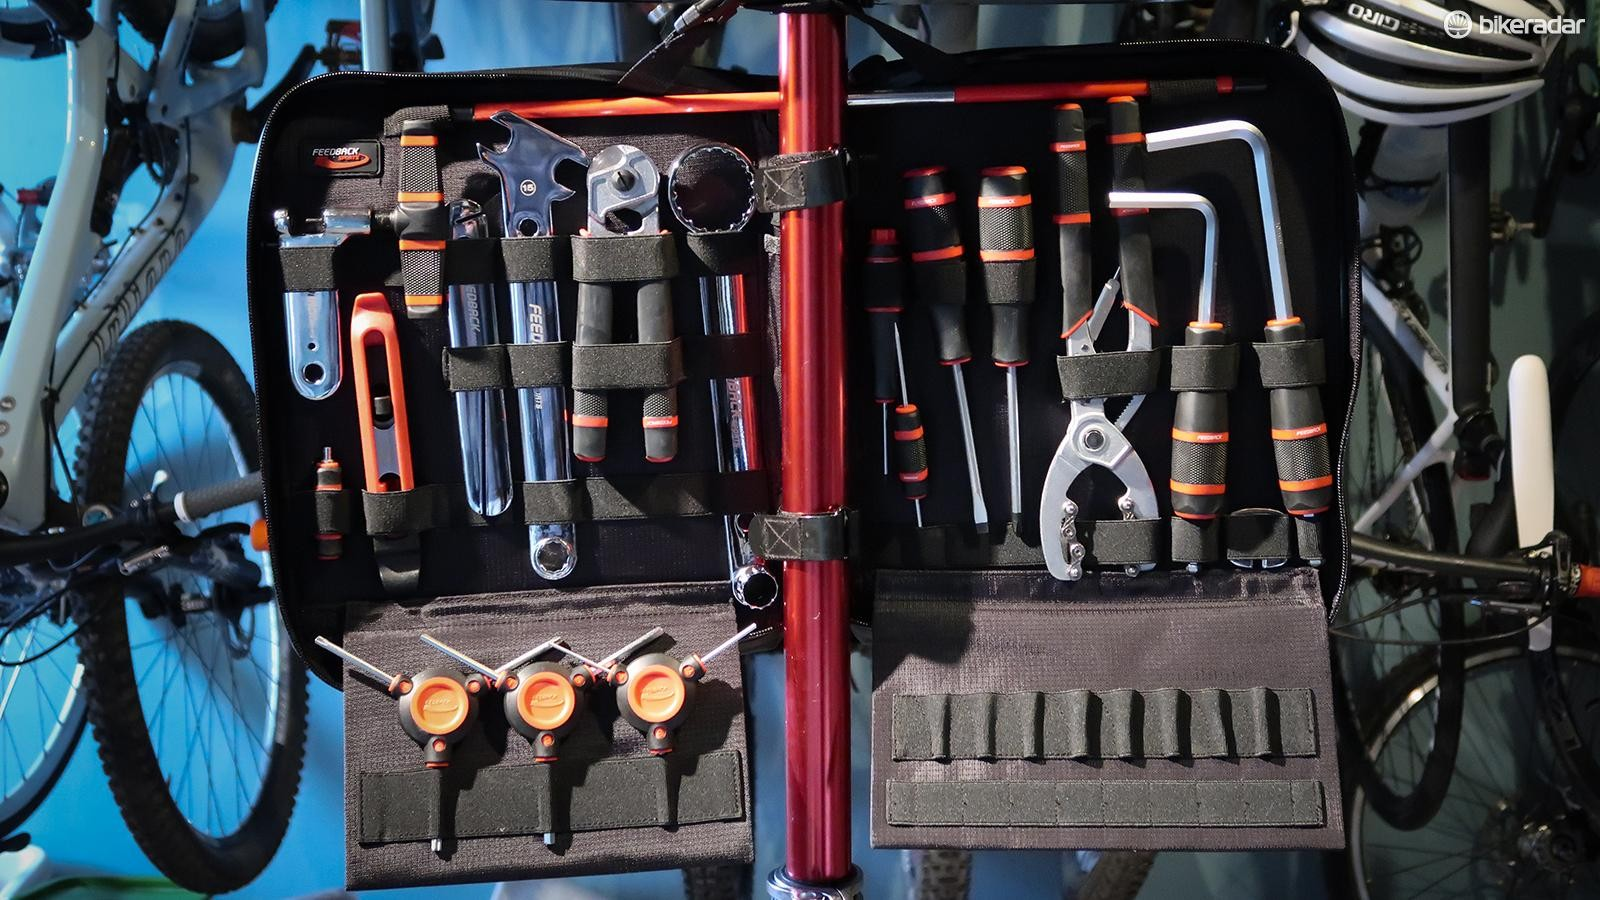 The Team Edition Tool Kit can easily mount to Feedback's repair stands